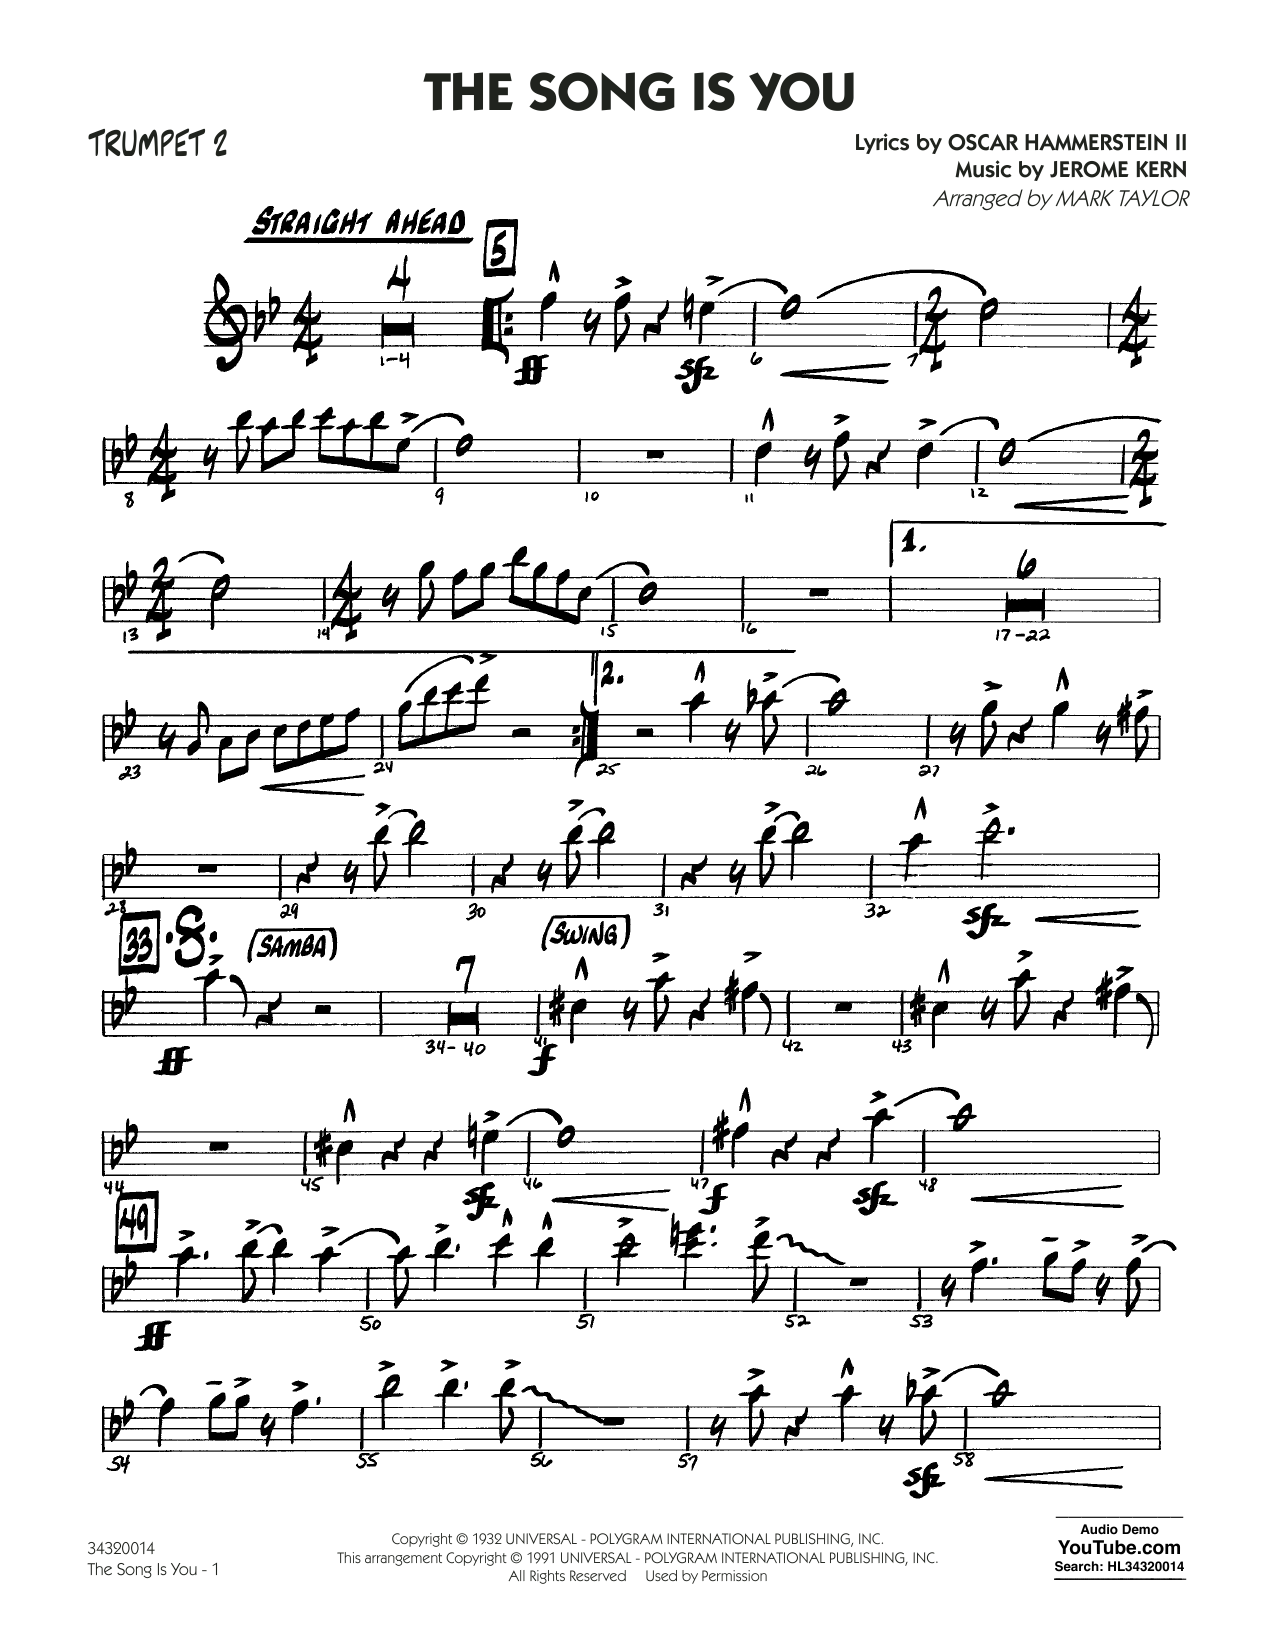 Mark Taylor The Song Is You - Trumpet 2 sheet music notes and chords. Download Printable PDF.